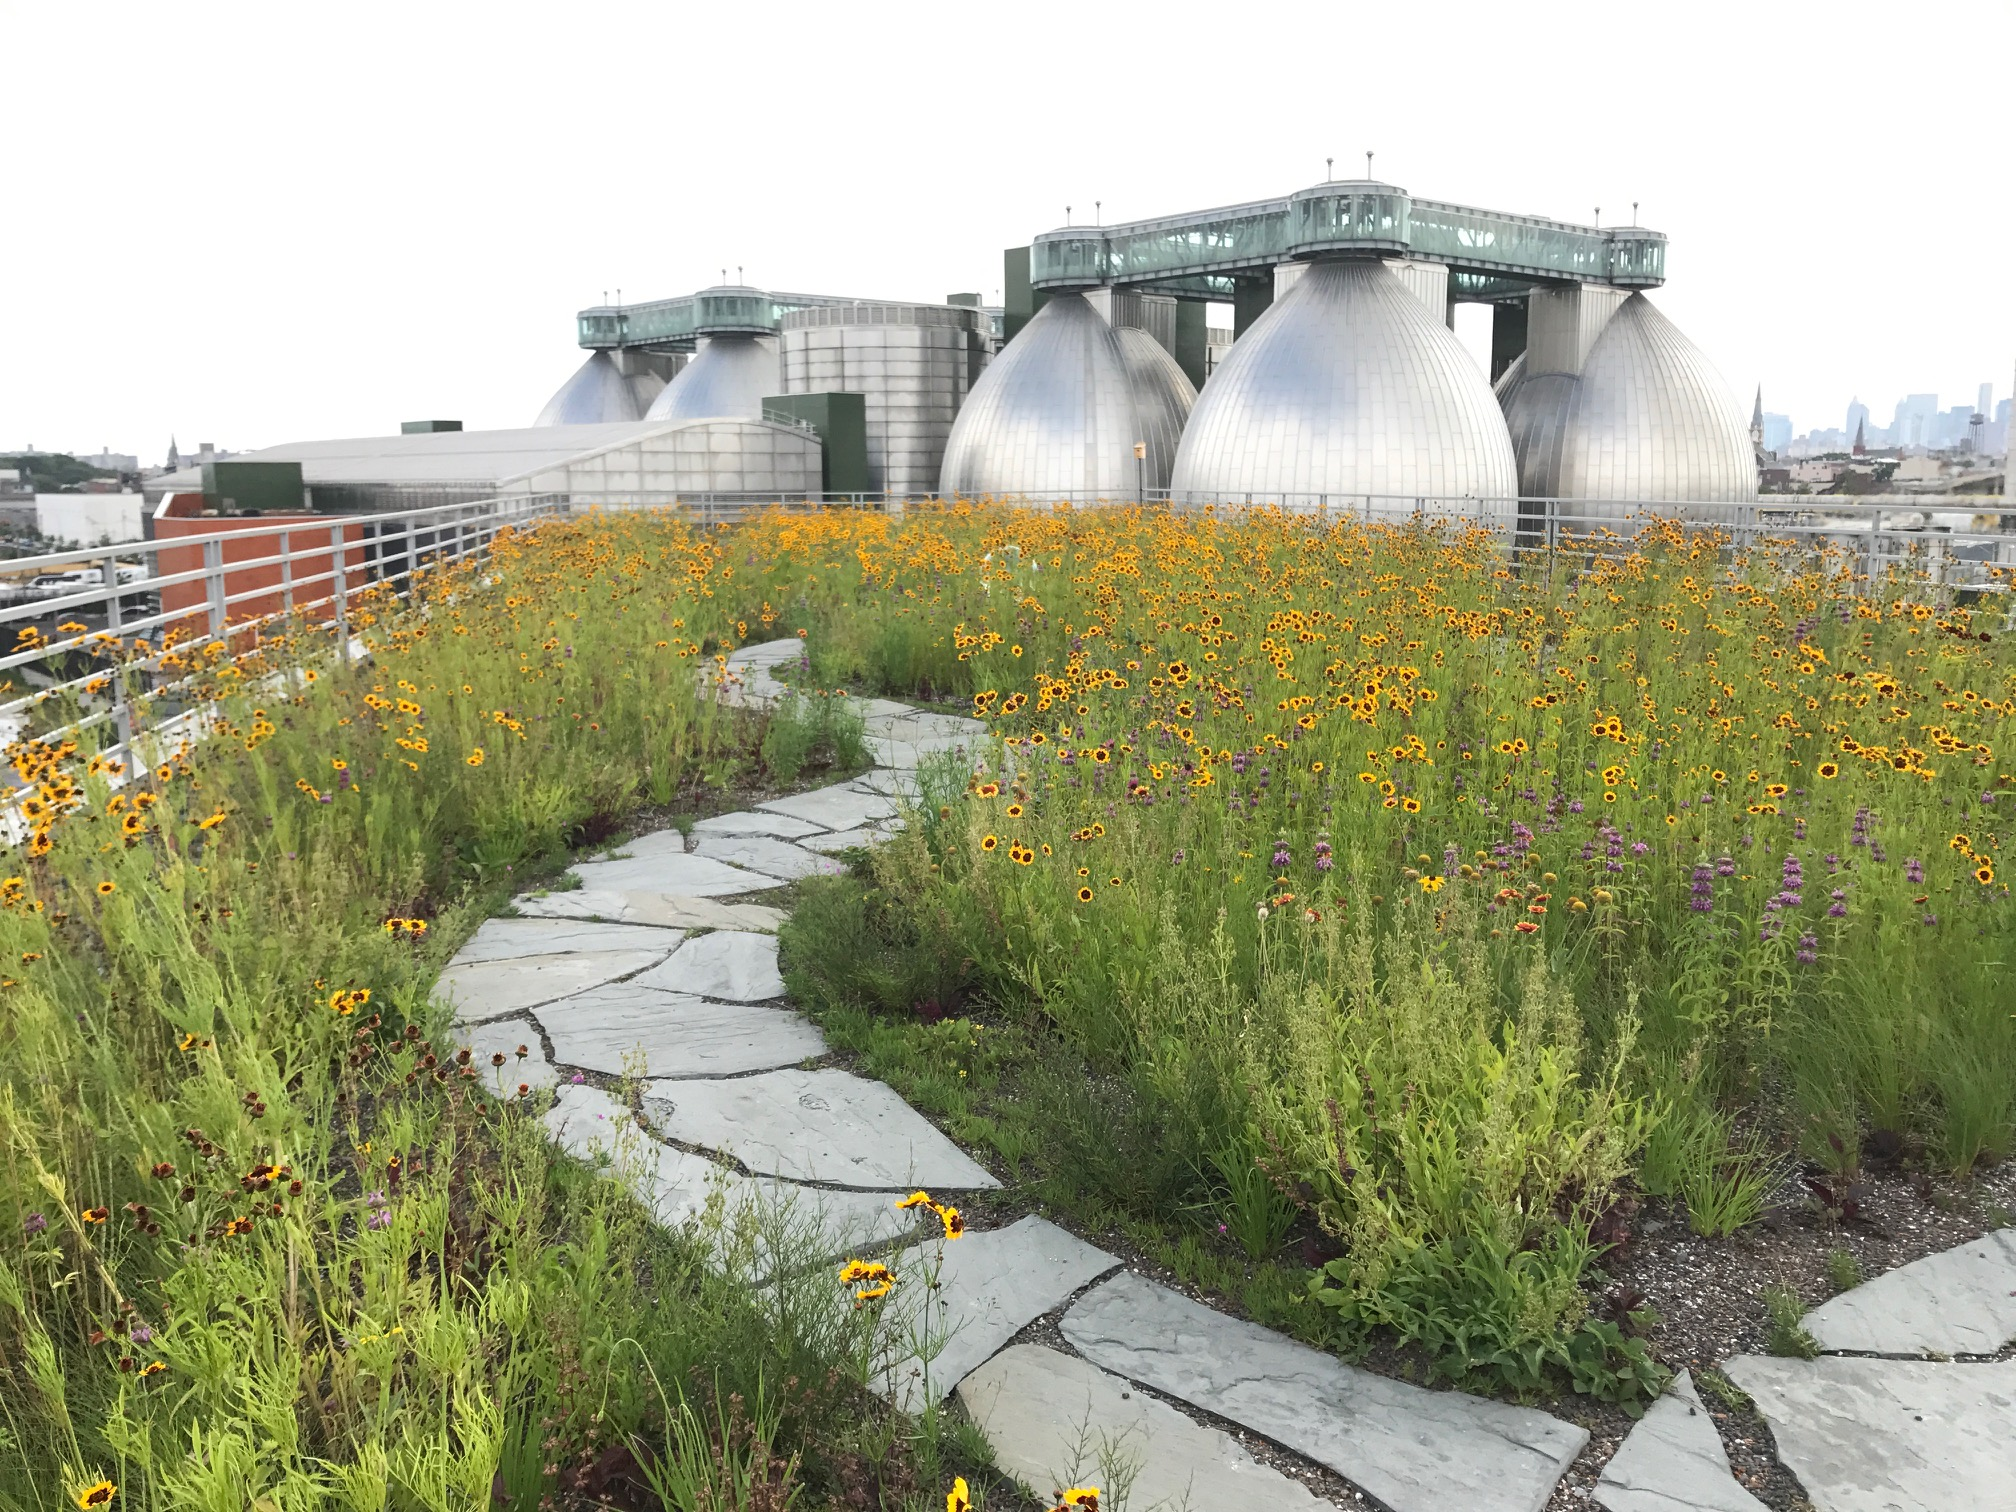 A photo of Kingsland Wildflowers in full bloom after it's been fully landscaped and planted. Weeding, watering and upkeep is still necessary, but much of the roof takes care of itself.